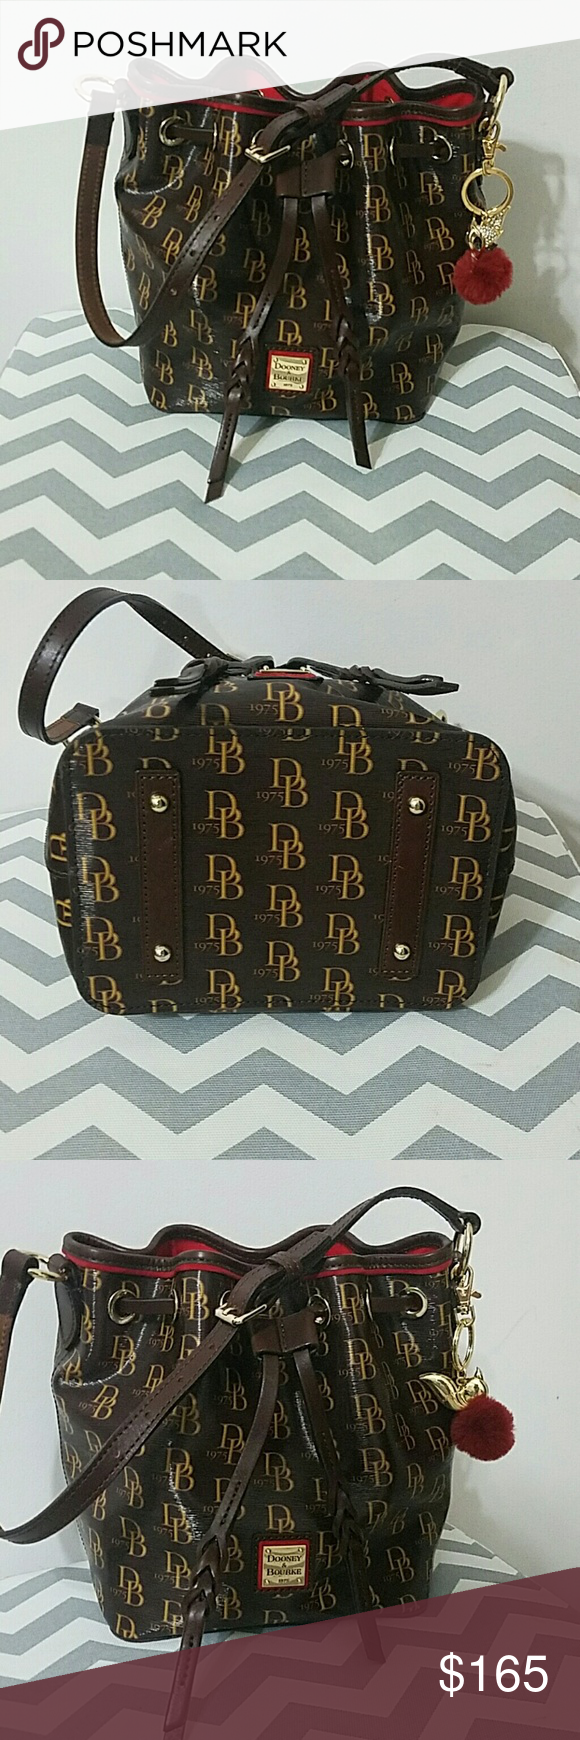 Pebble Small Logan Drawstring Bag Used twice in great condition. Make a reasonable  offer! ❤ Dooney & Bourke Bags Shoulder Bags